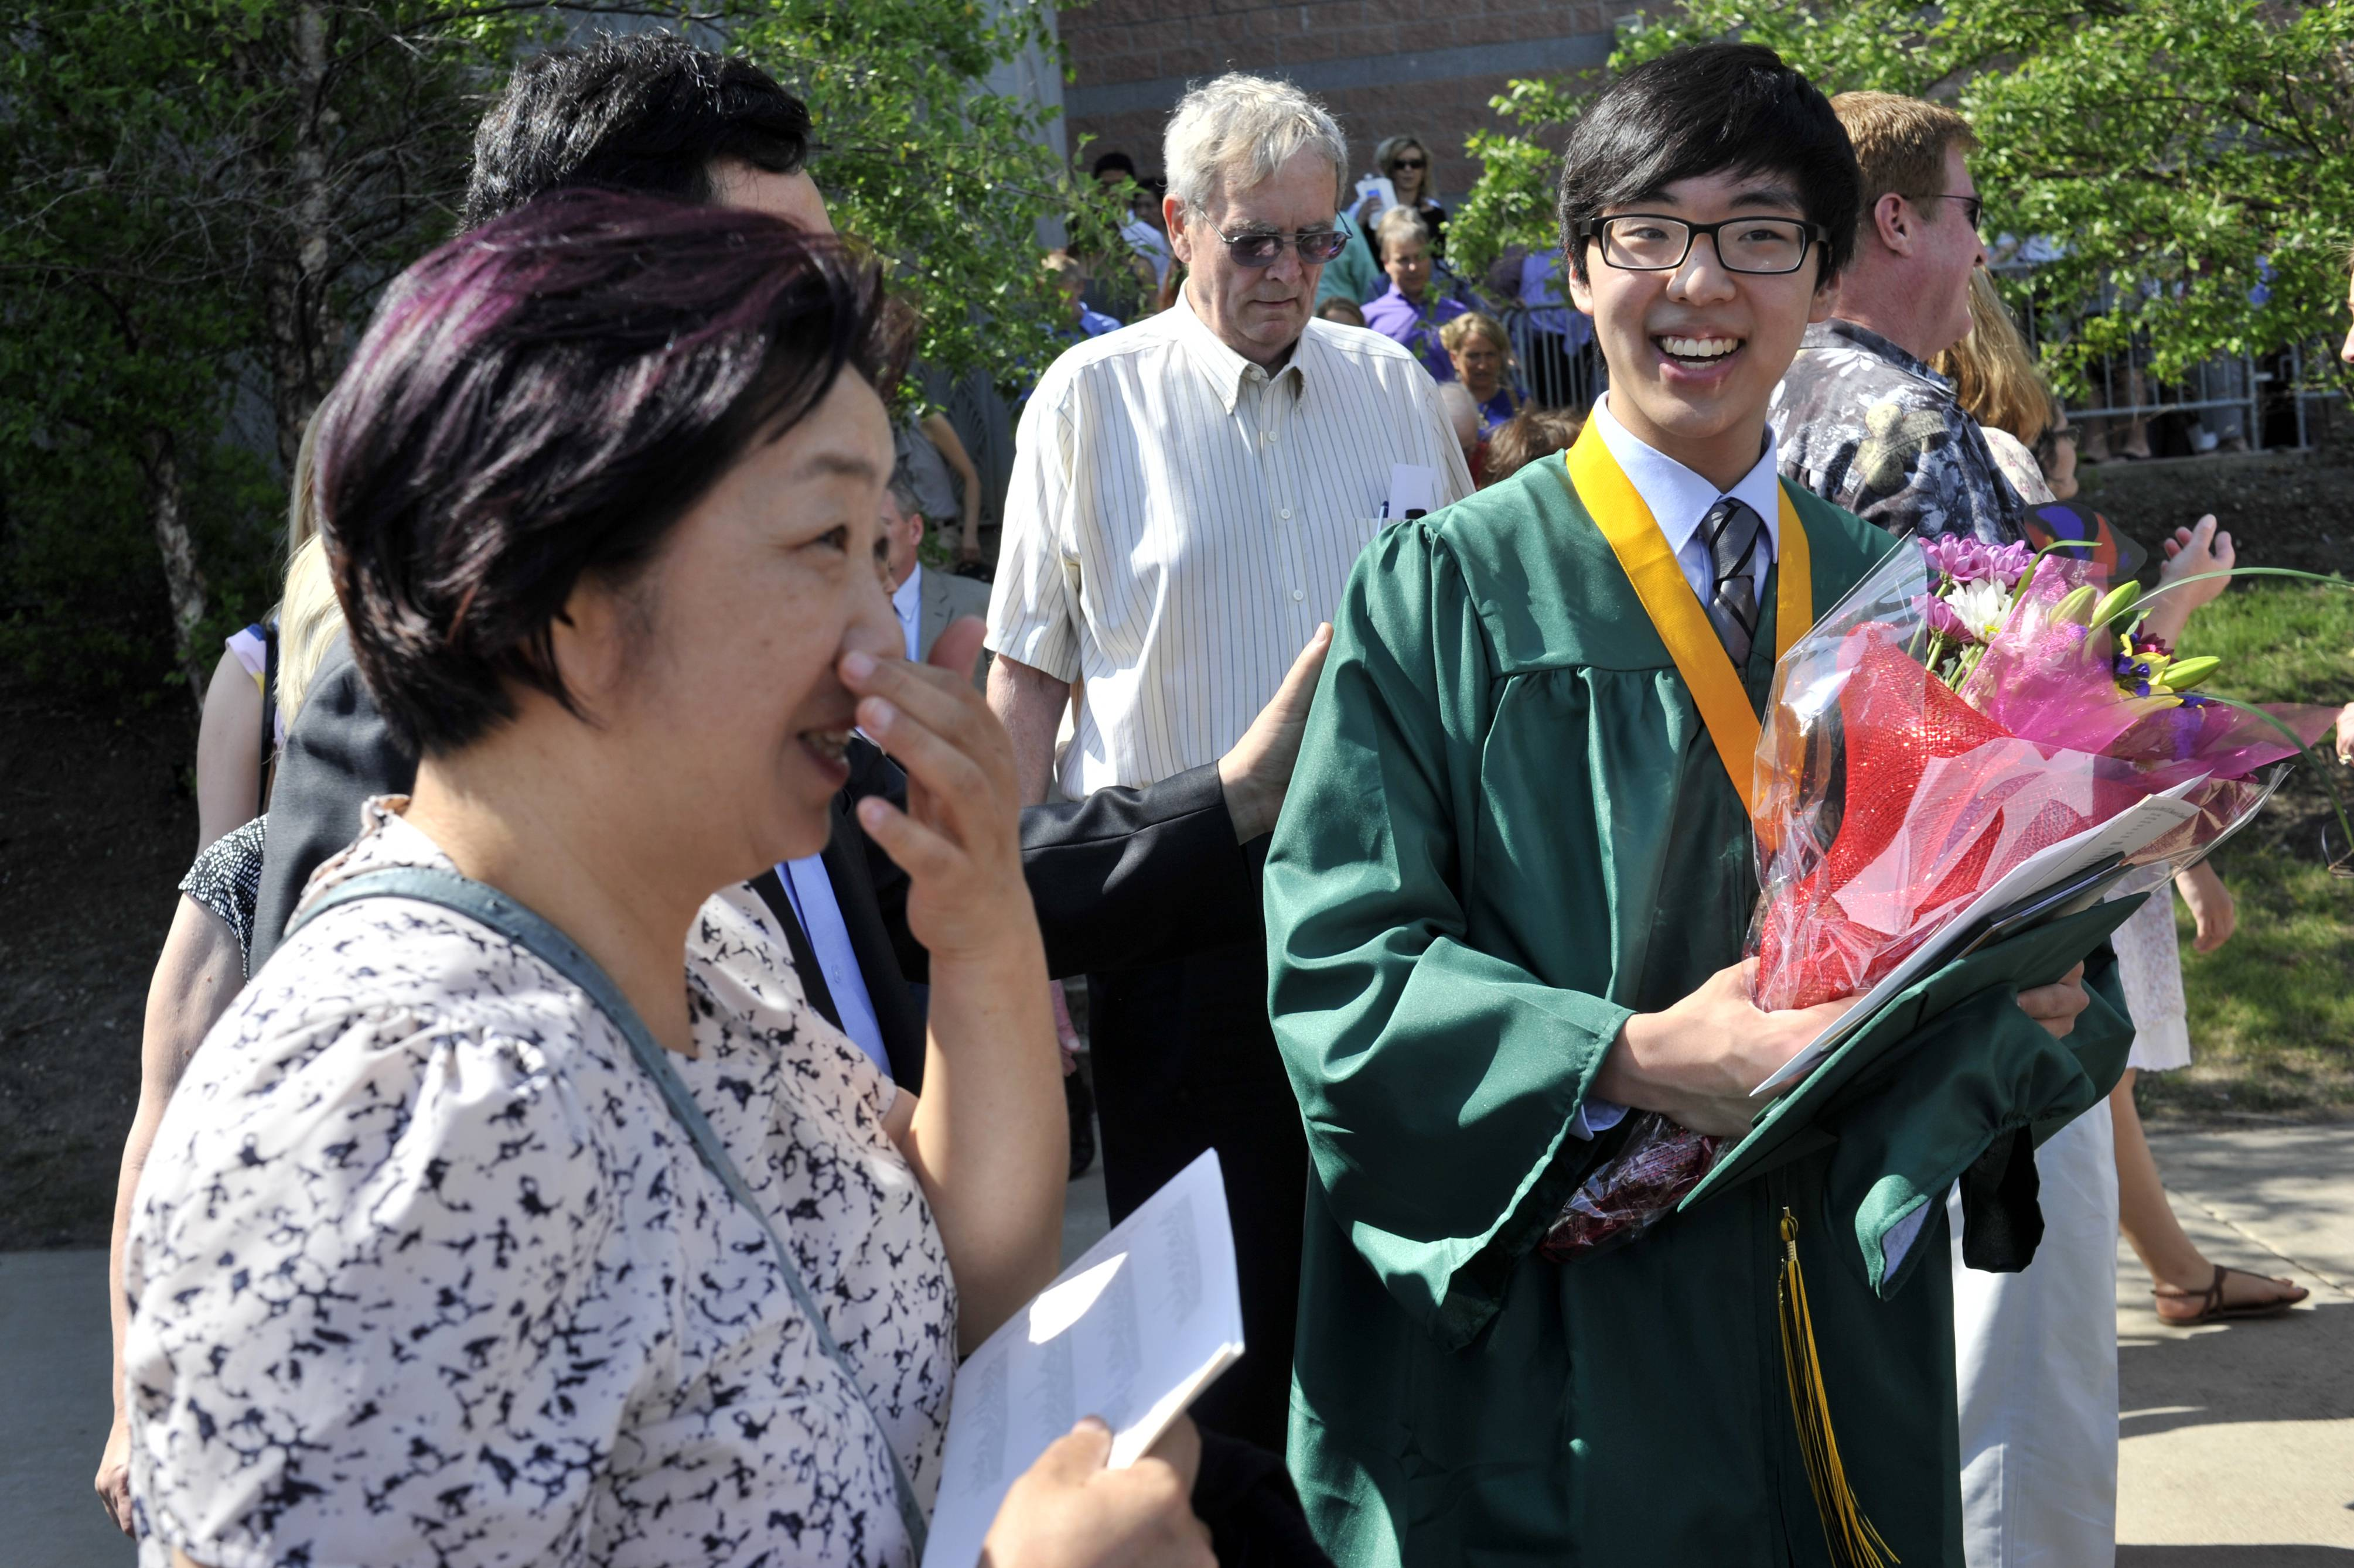 Tae Won Hur is greeted by his mother Hanna Hur of Hoffman Estates after the William Fremd High School commencement at Sears Centre in Hoffman Estates on Sunday, June 1.